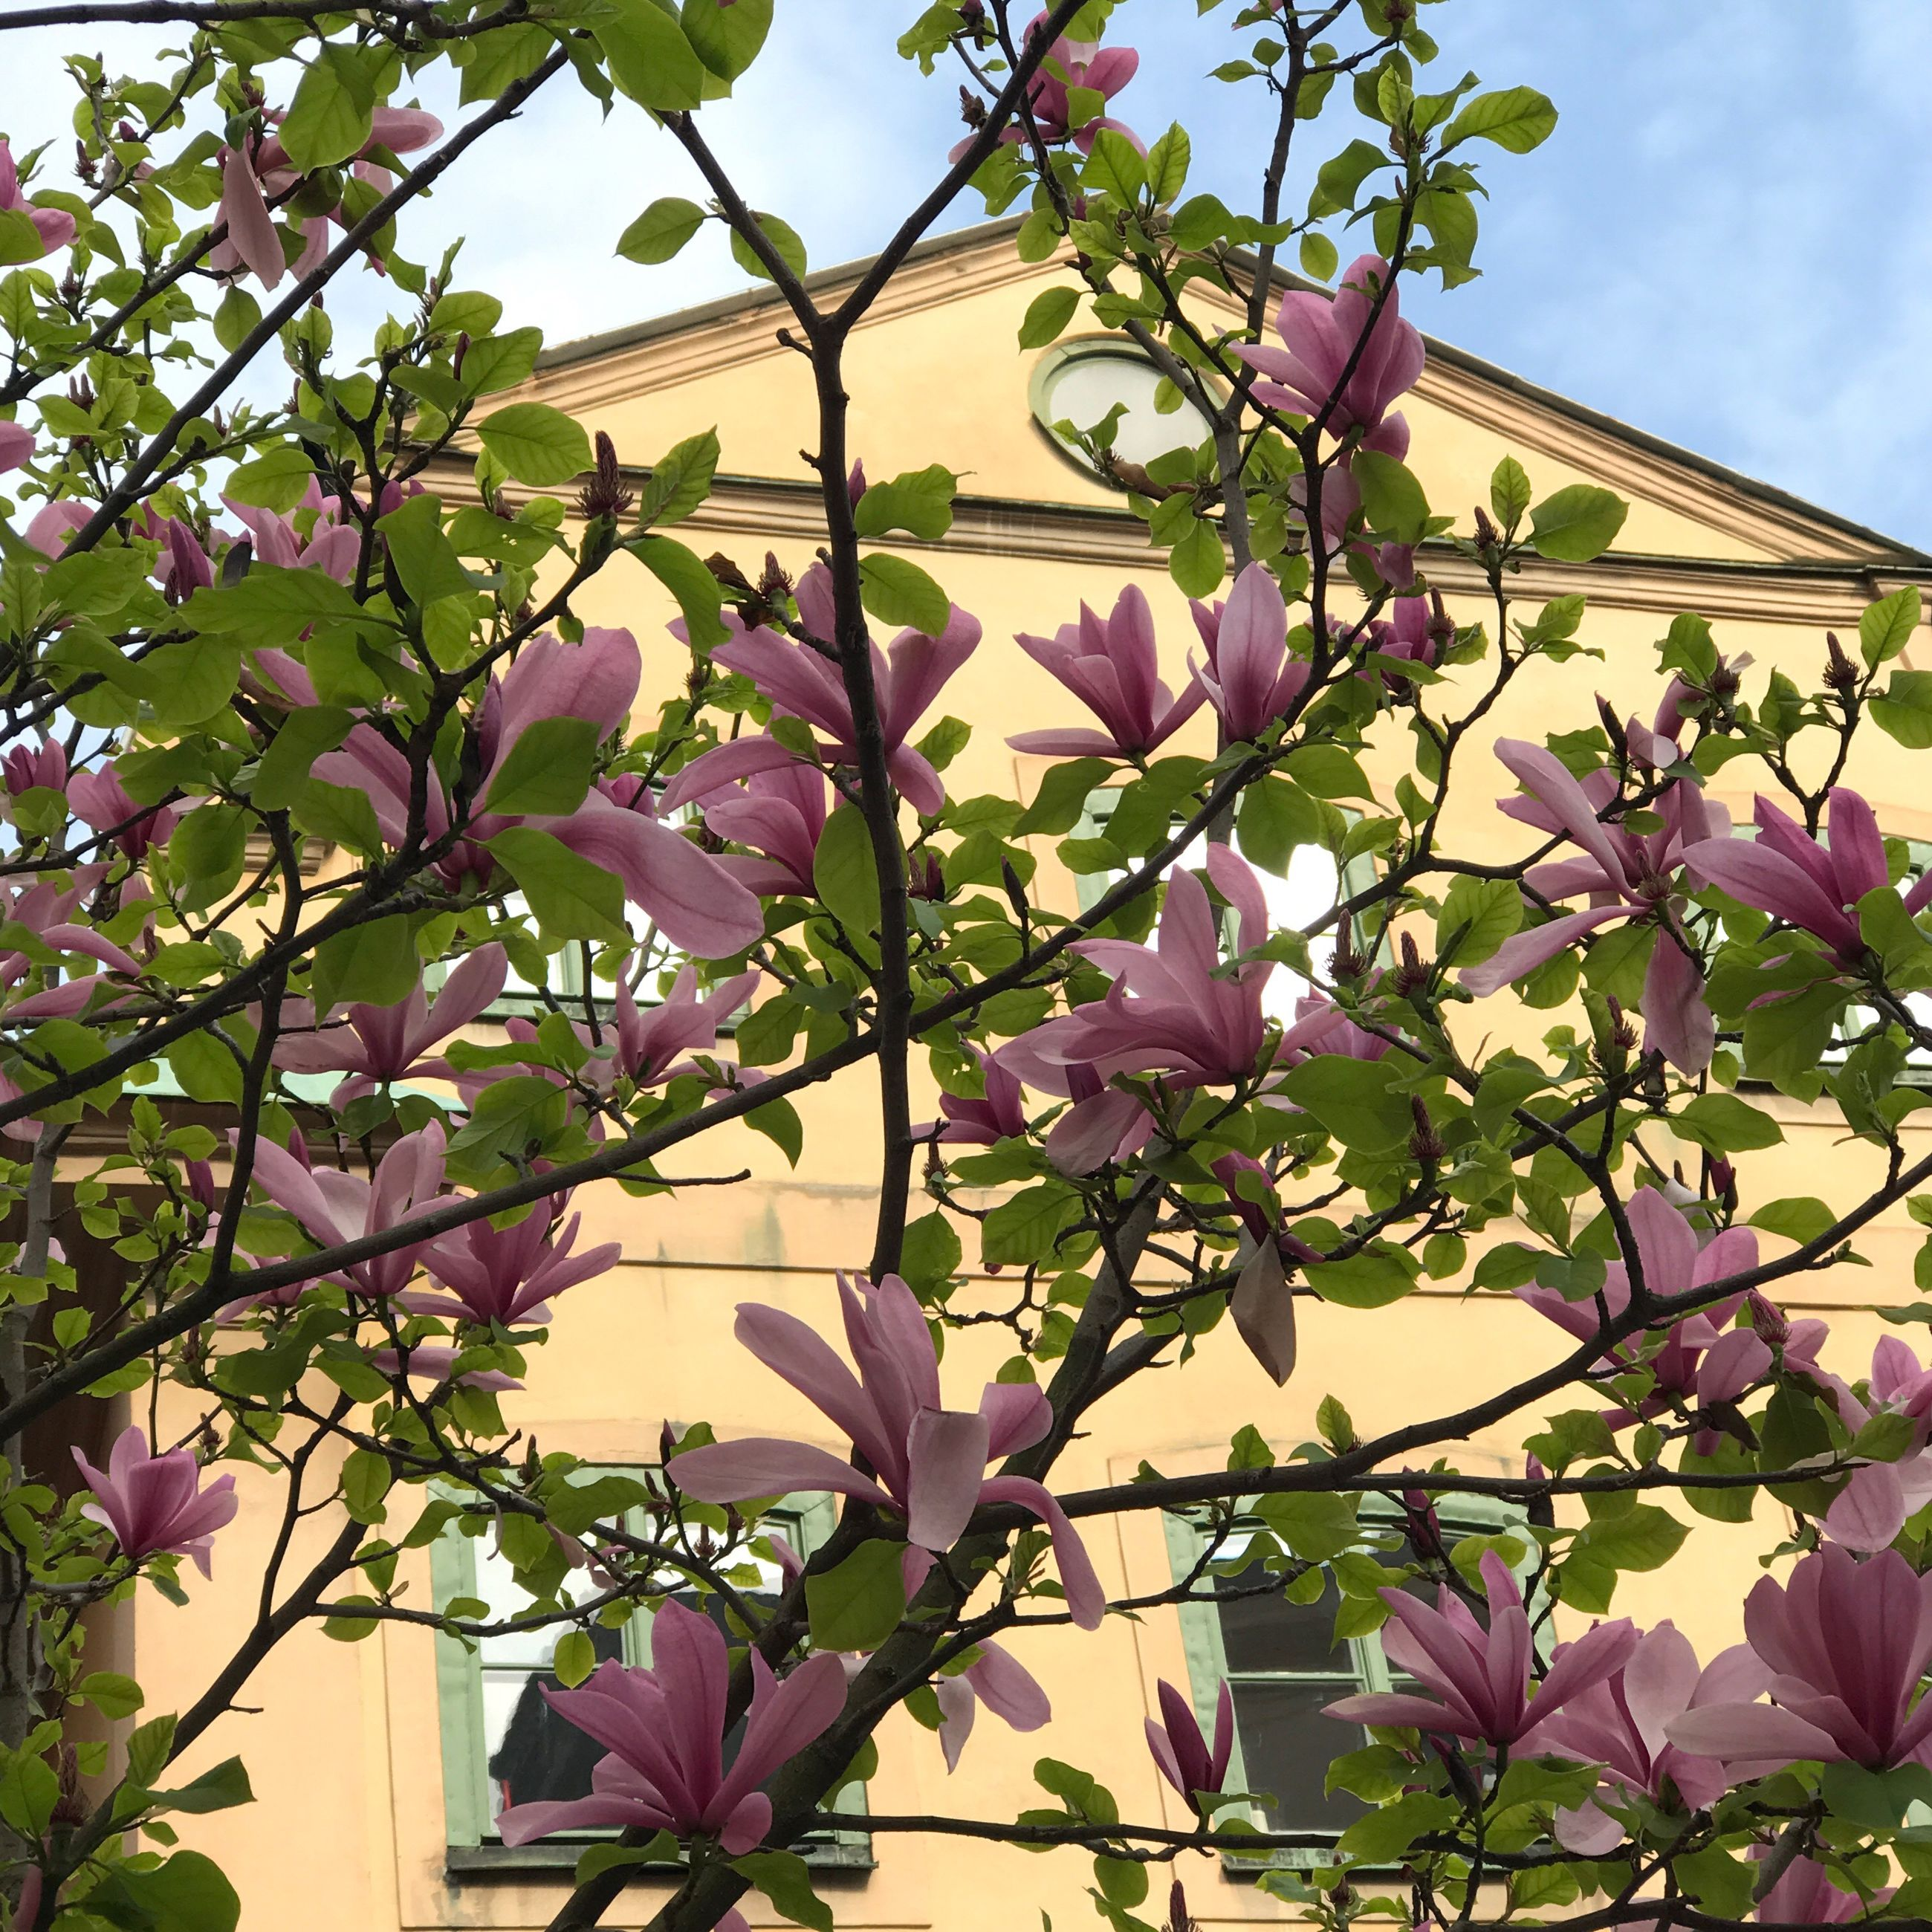 flower, growth, low angle view, nature, petal, pink color, purple, plant, tree, no people, fragility, beauty in nature, outdoors, day, branch, sky, freshness, architecture, blooming, building exterior, built structure, bougainvillea, close-up, flower head